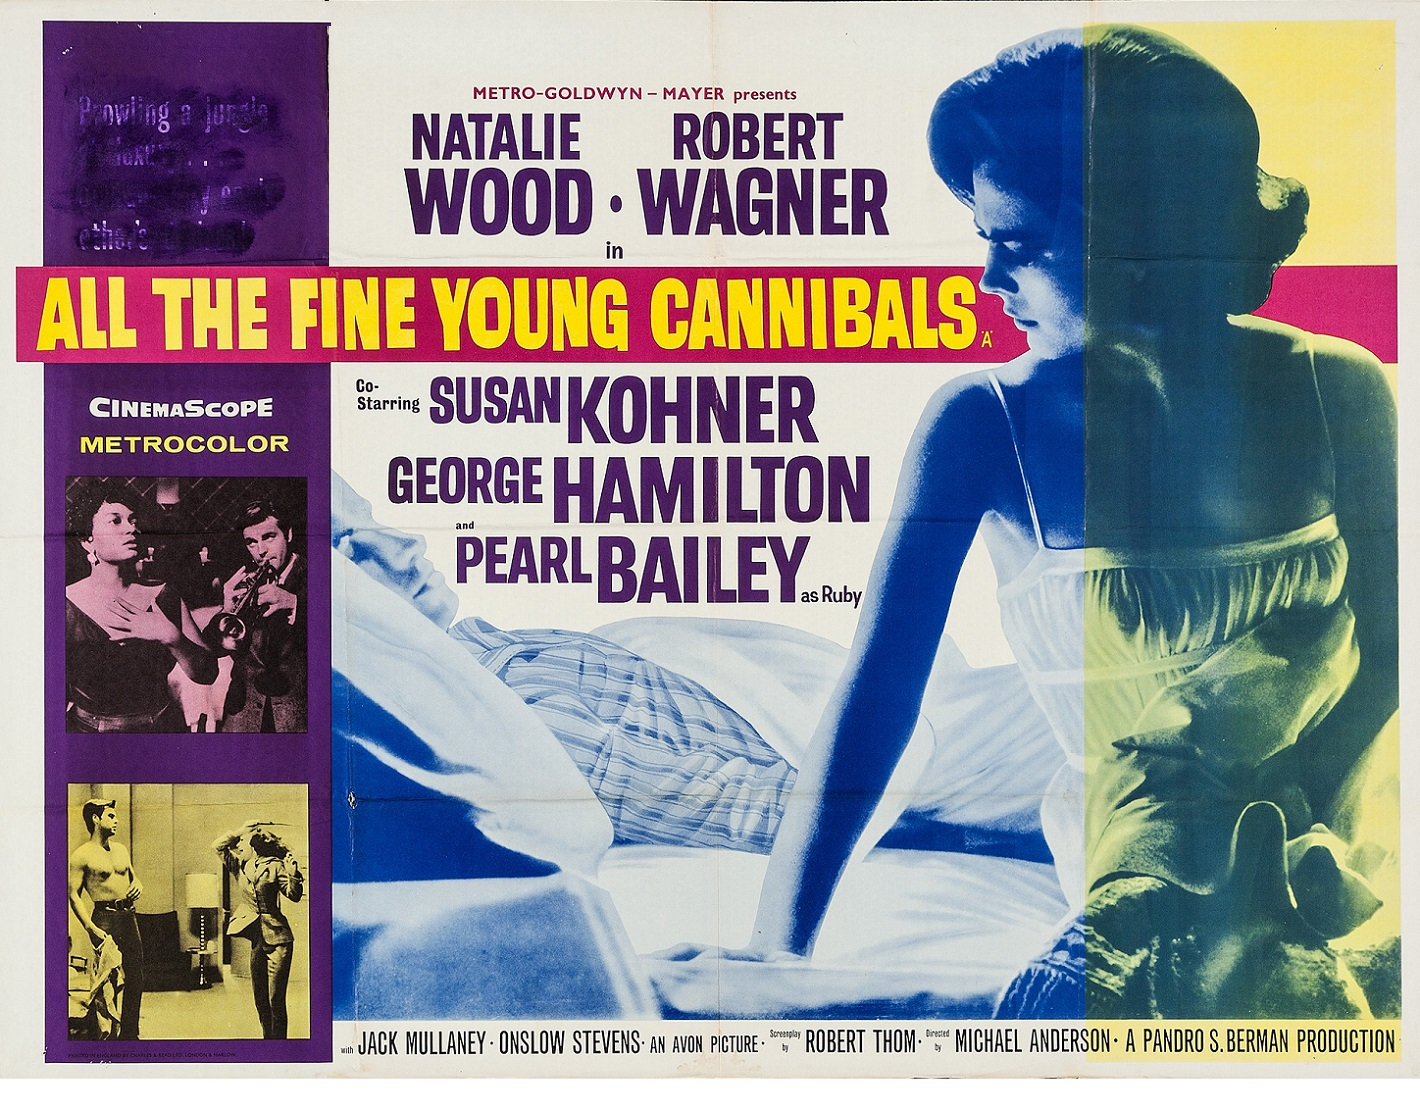 ALL THE FINE YOUNG CANNIBALS (1960) WEB SITE